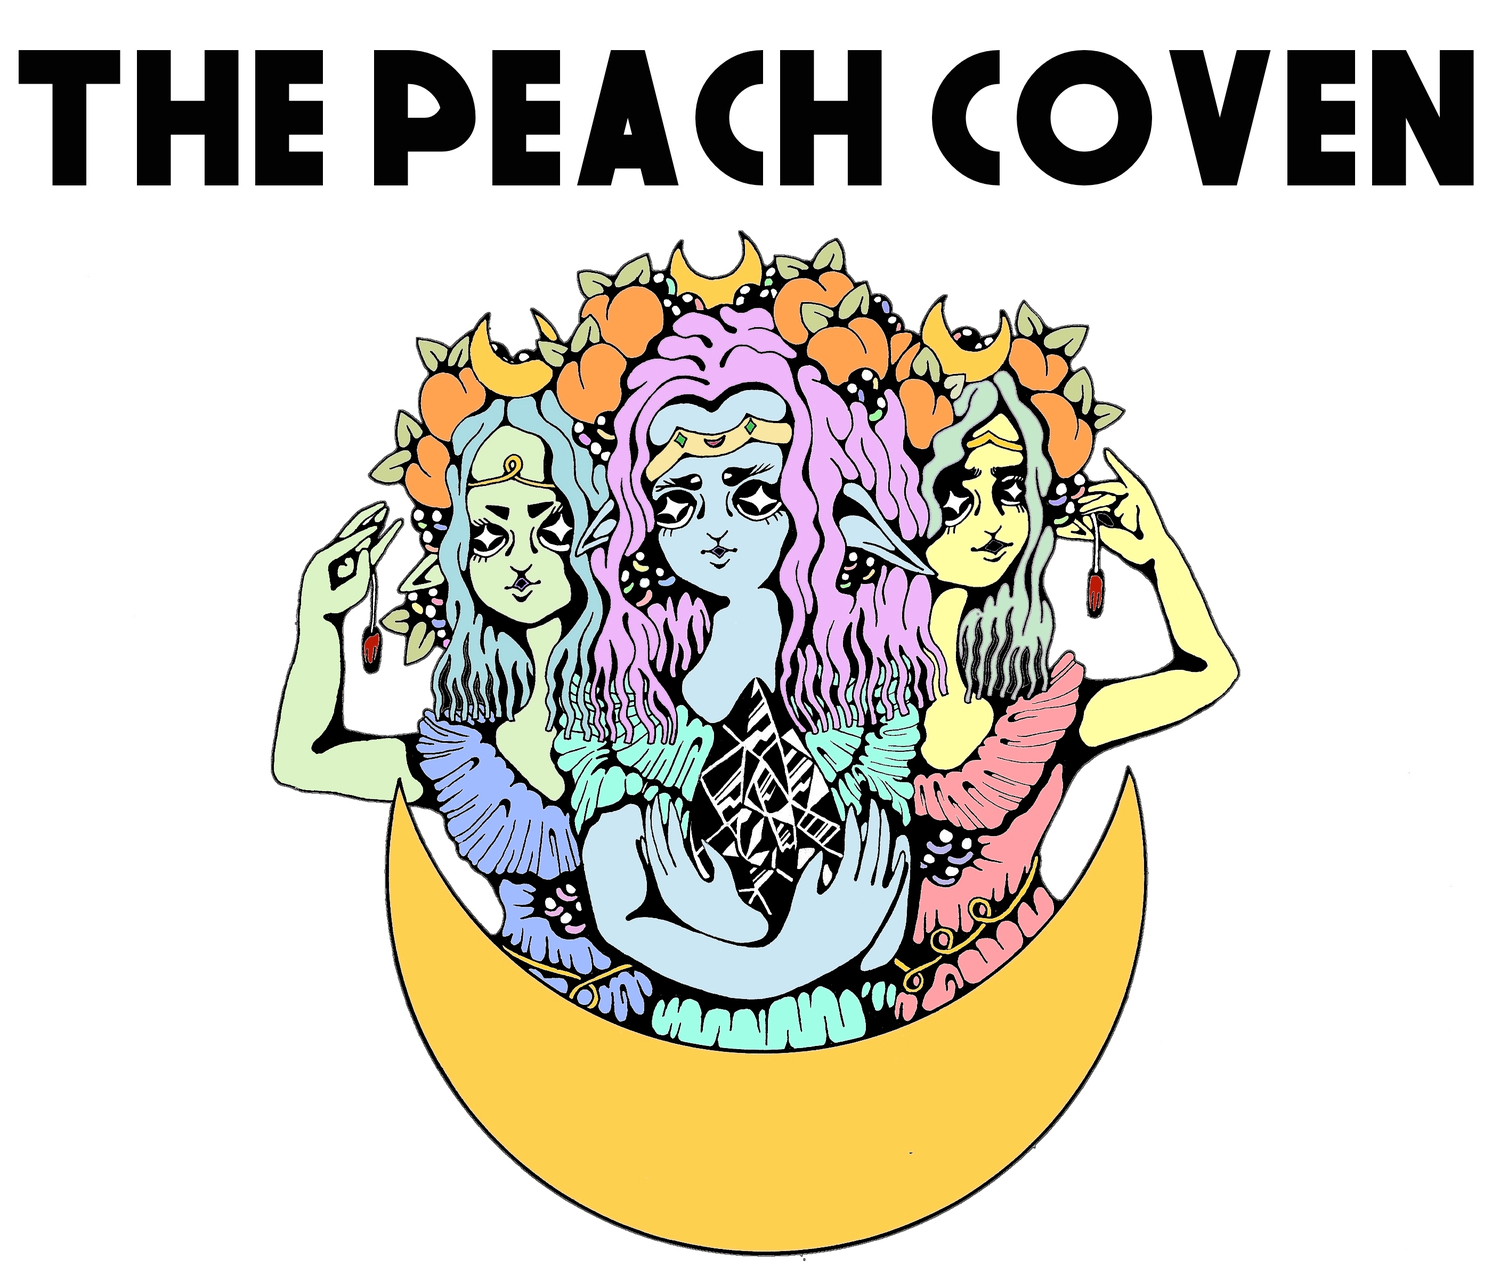 THE PEACH COVEN